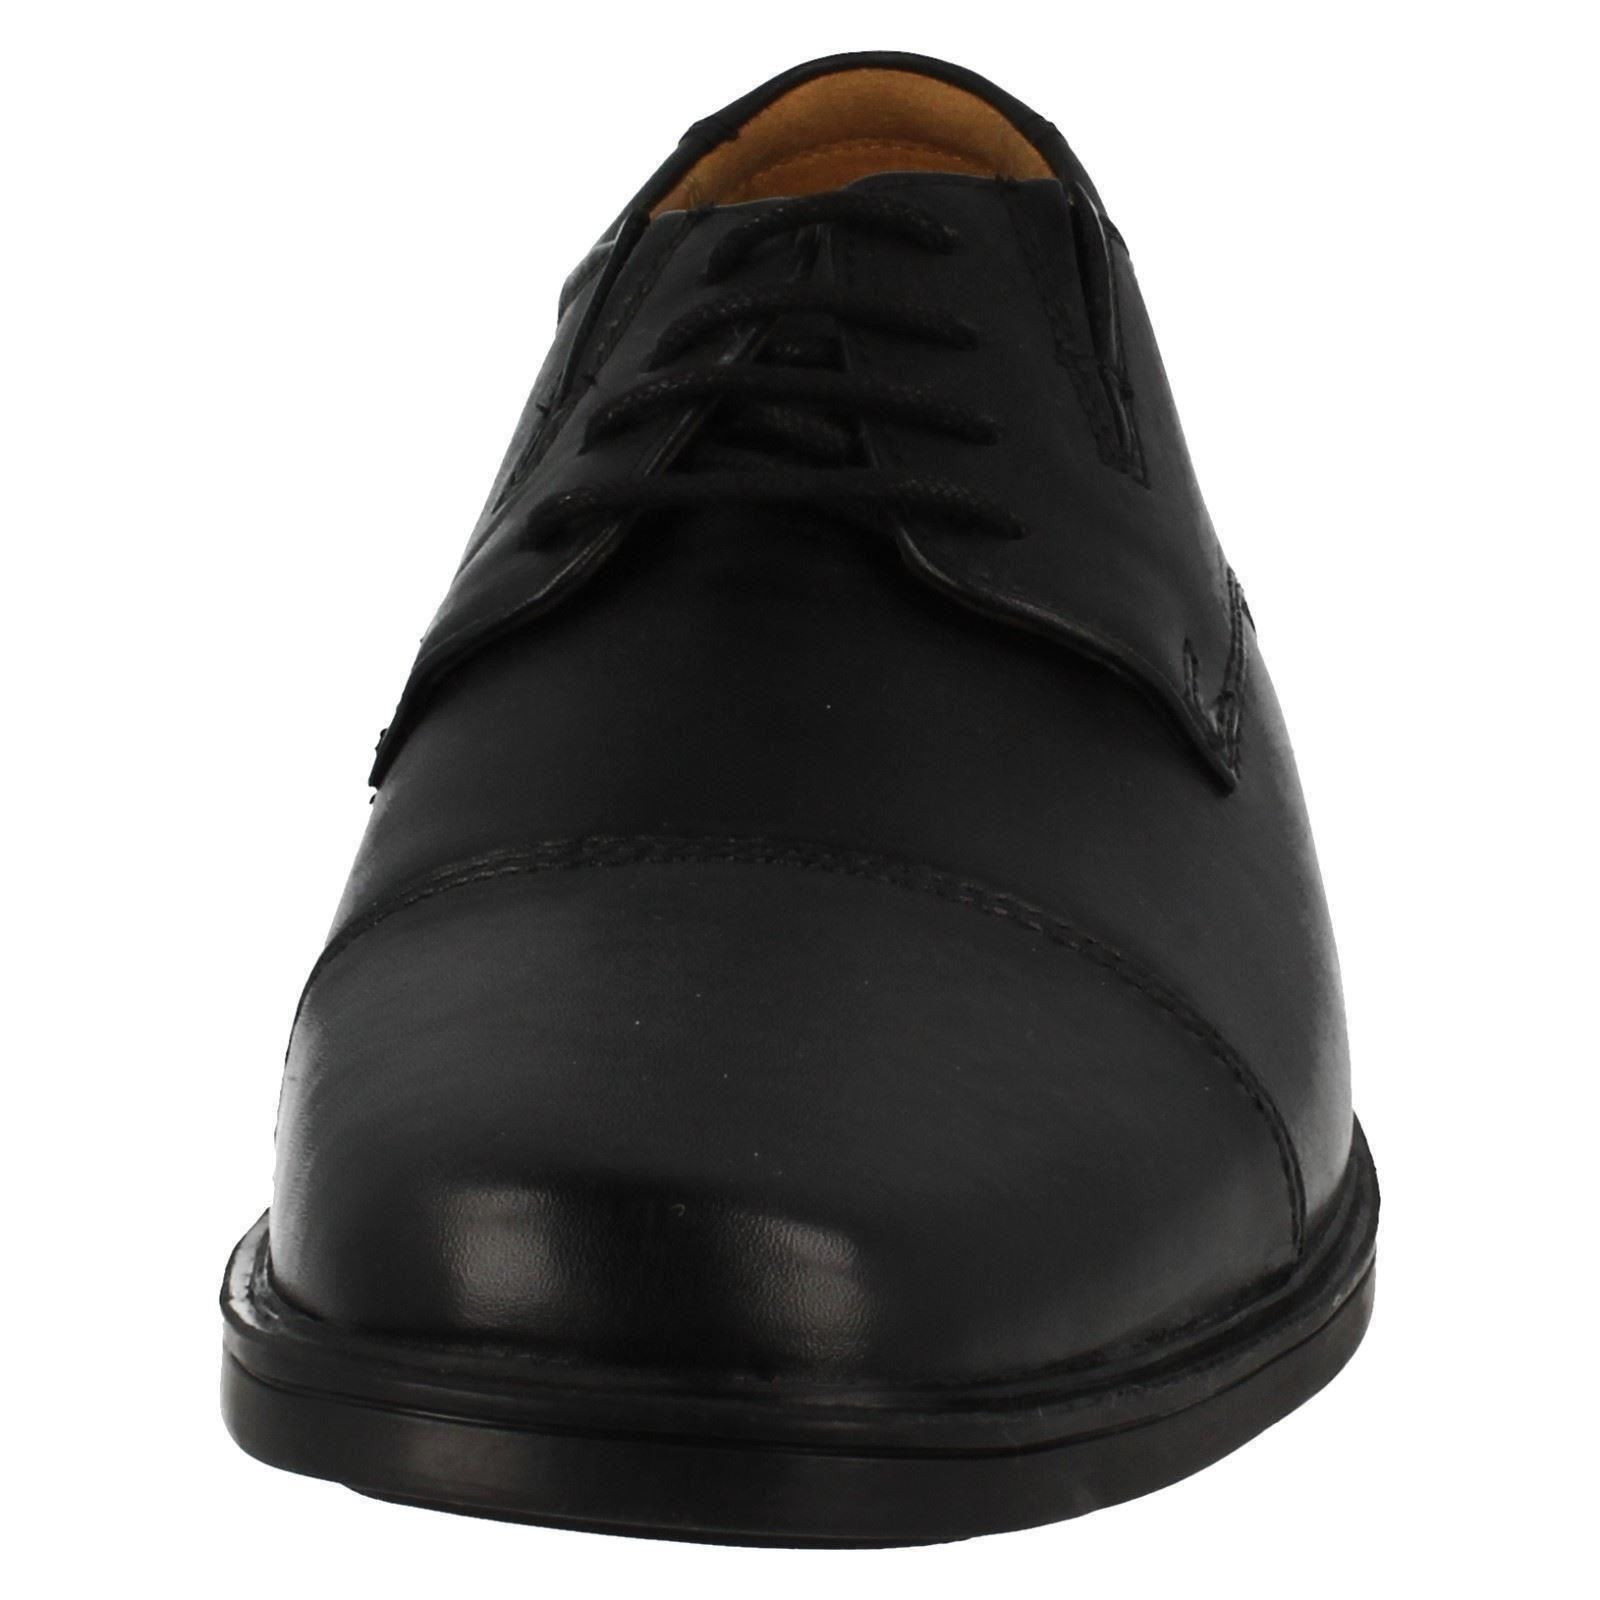 Mens-Clarks-Formal-Lace-Up-Shoes-Tilden-Cap thumbnail 8